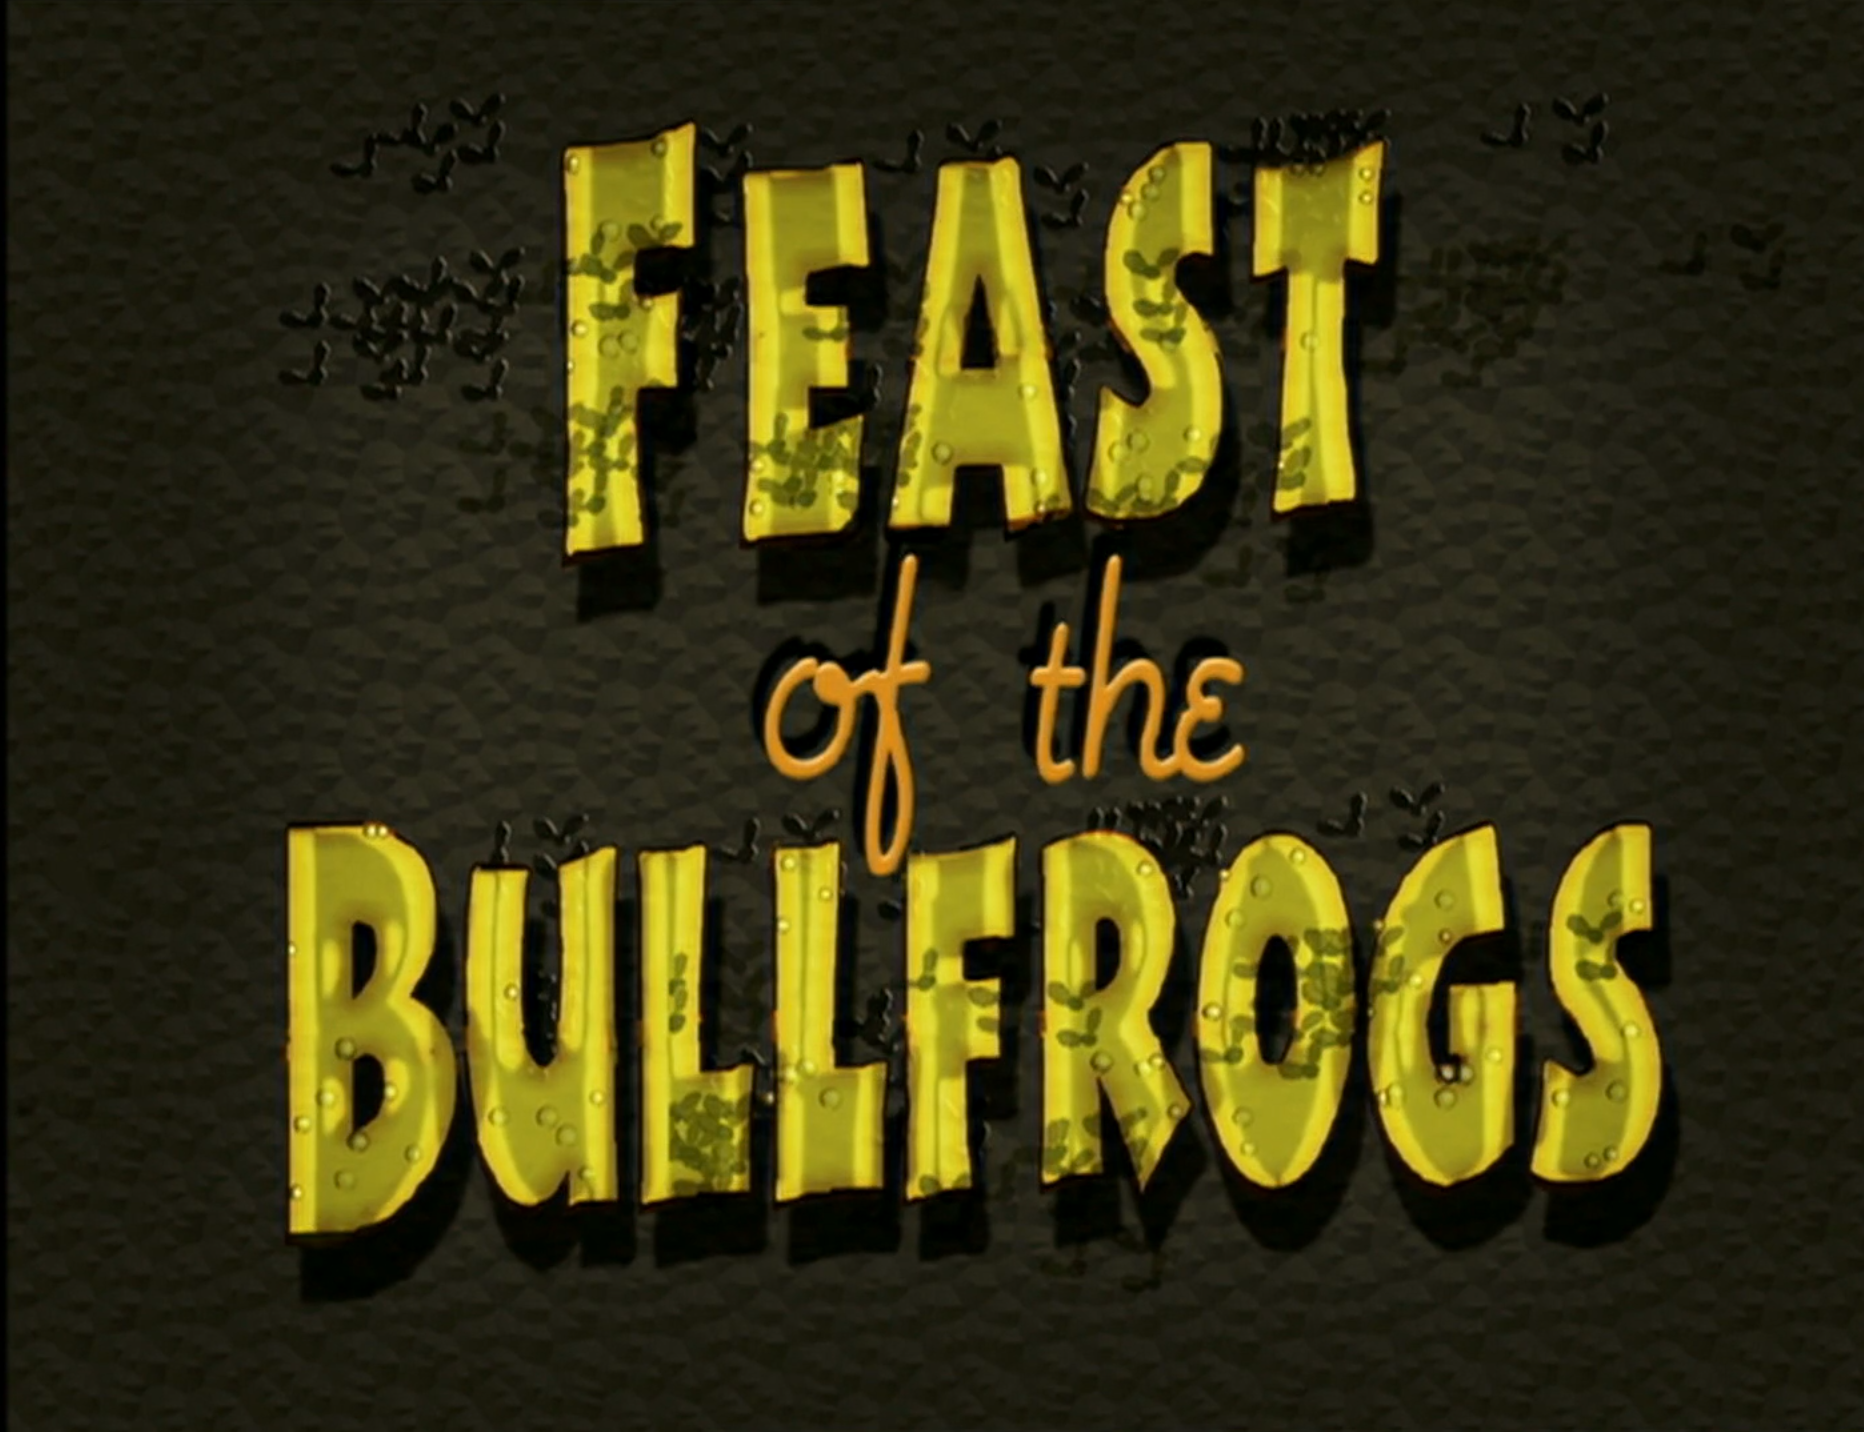 File:Feast of the Bullfrogs.png